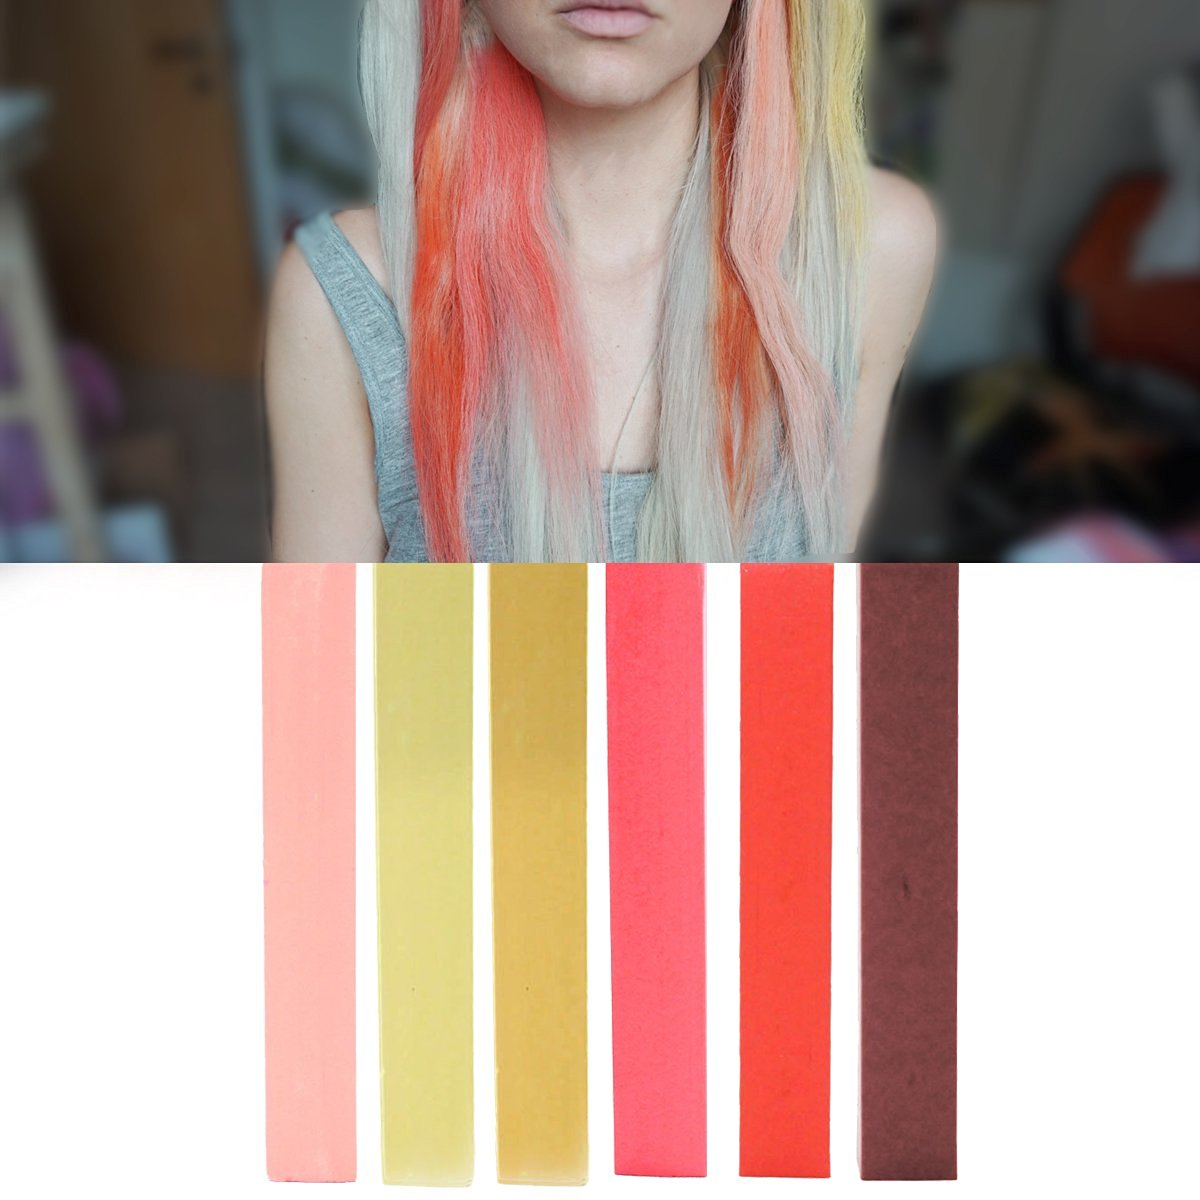 Buy Best Rose Gold Ombre Hair Dye Set Pink Blonde Red And